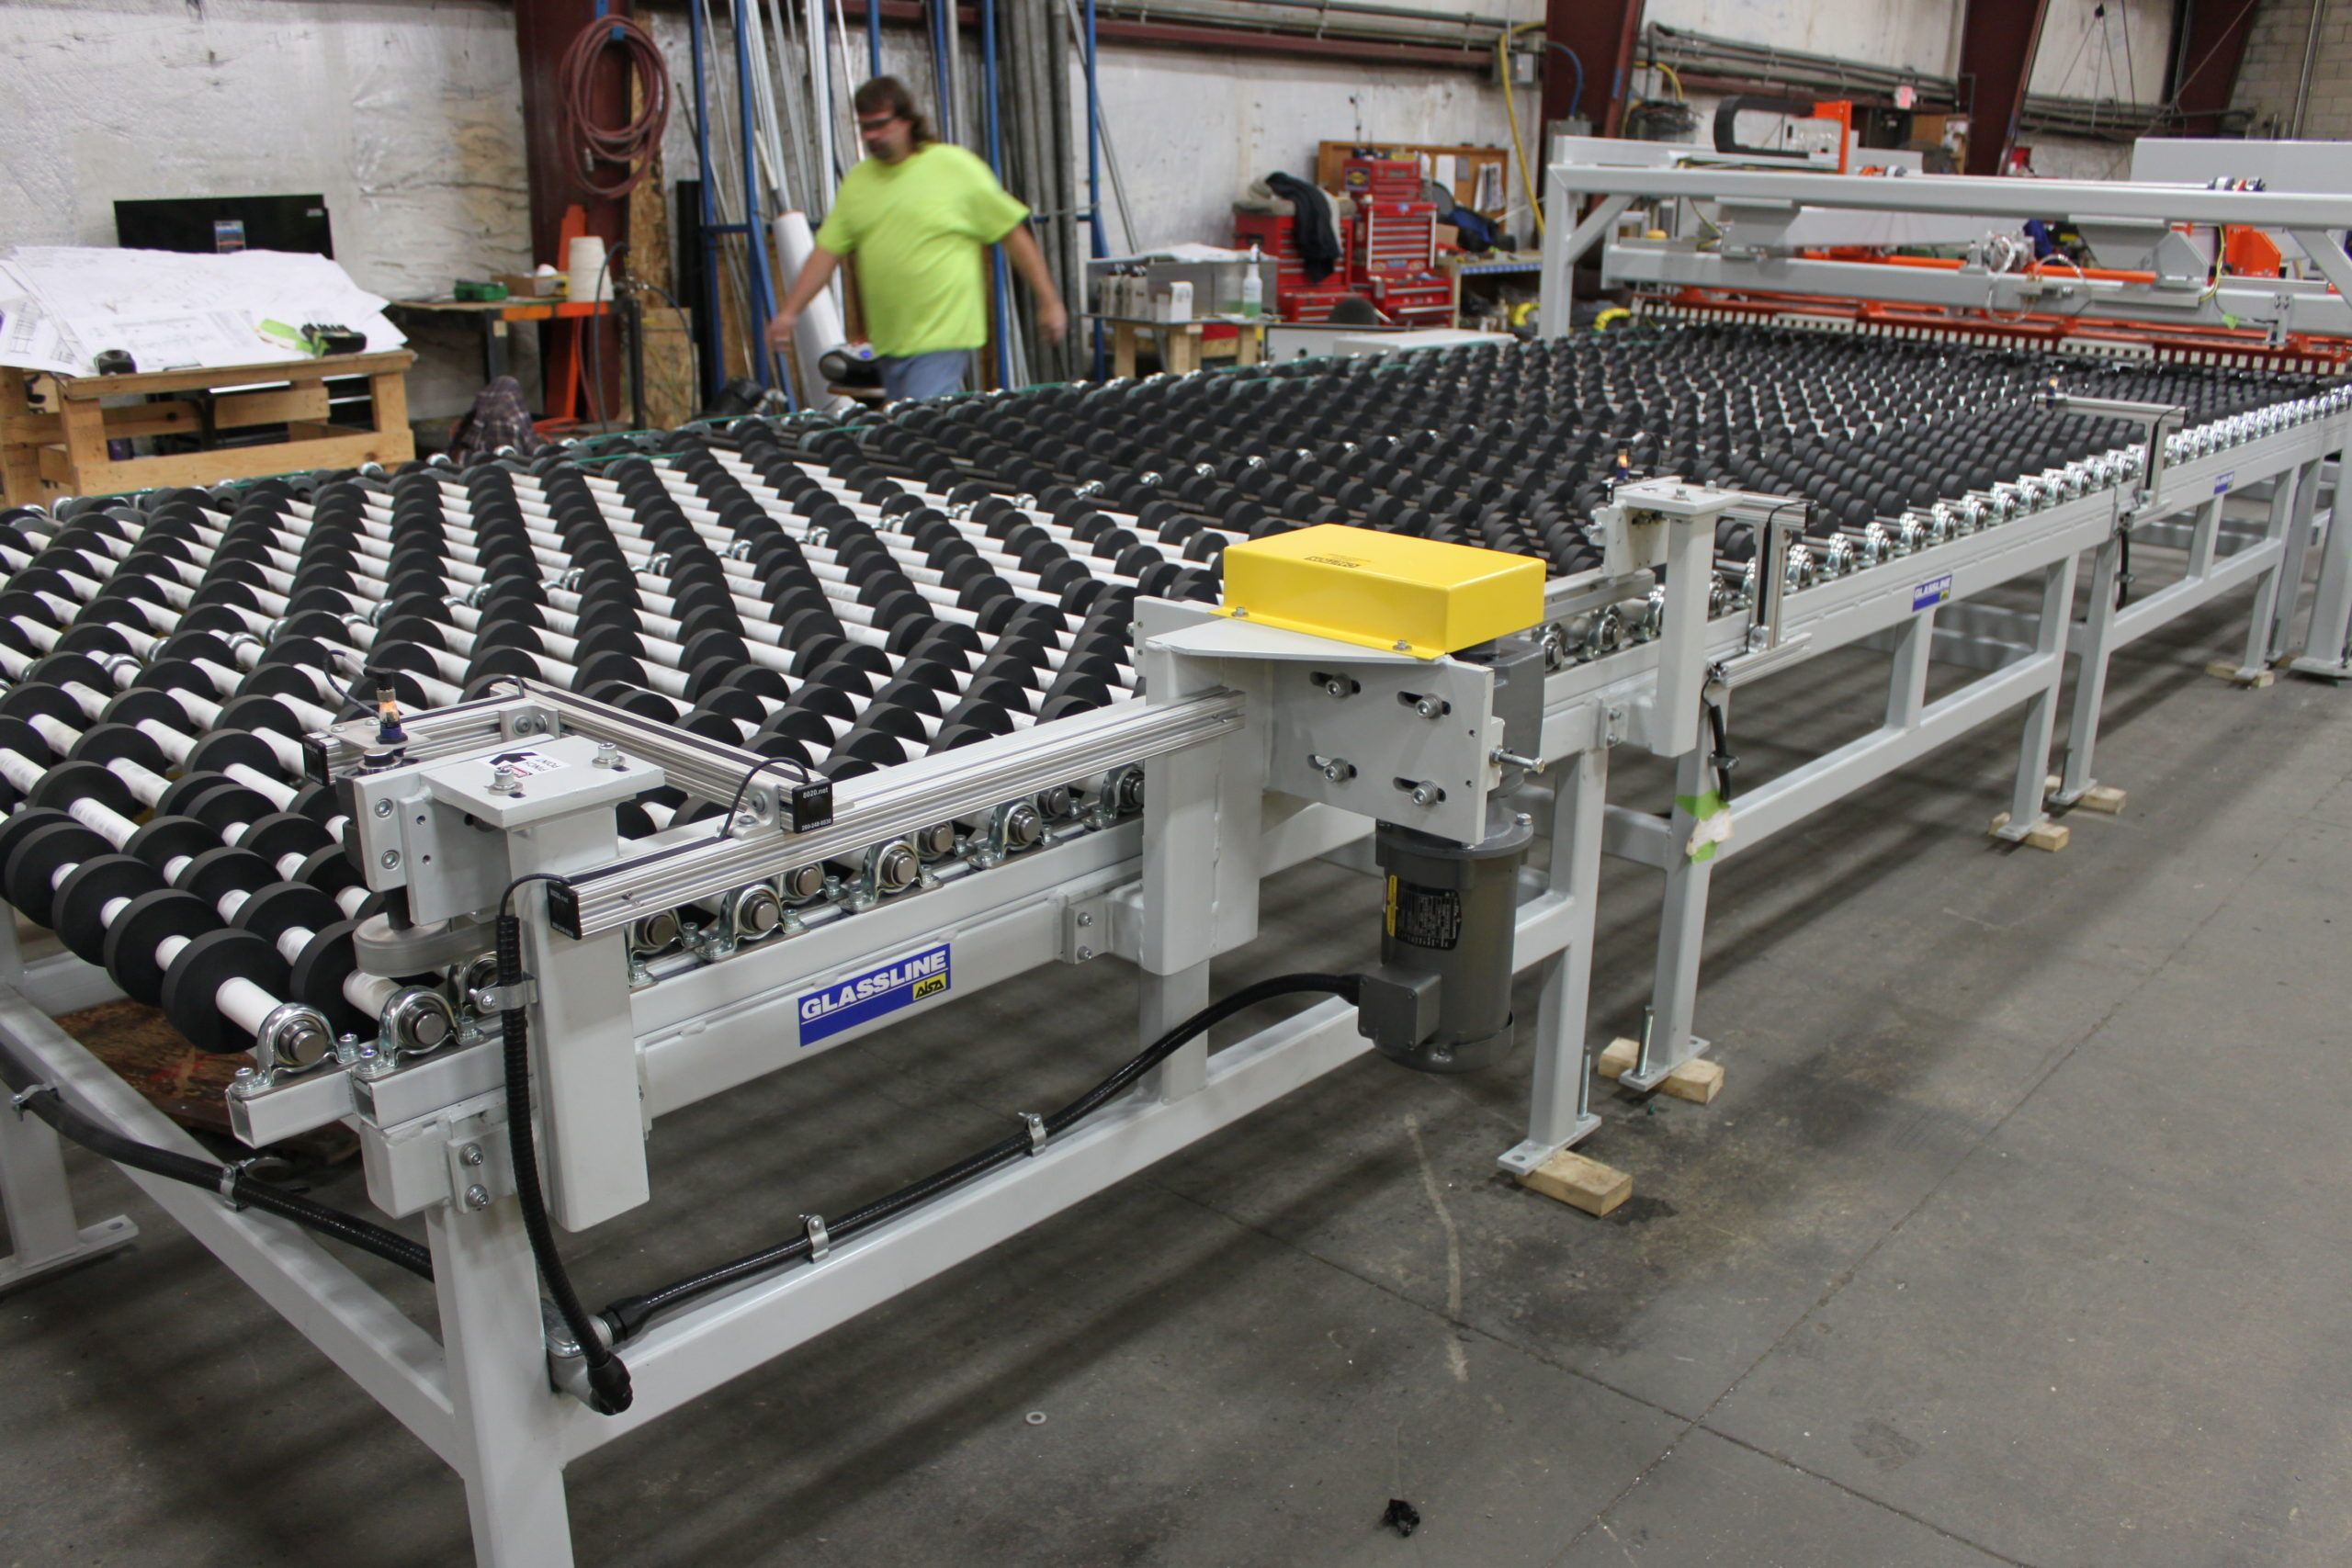 Roll Conveyors - Canted Roll Conveyor with Edge Guide Belt | Glassline